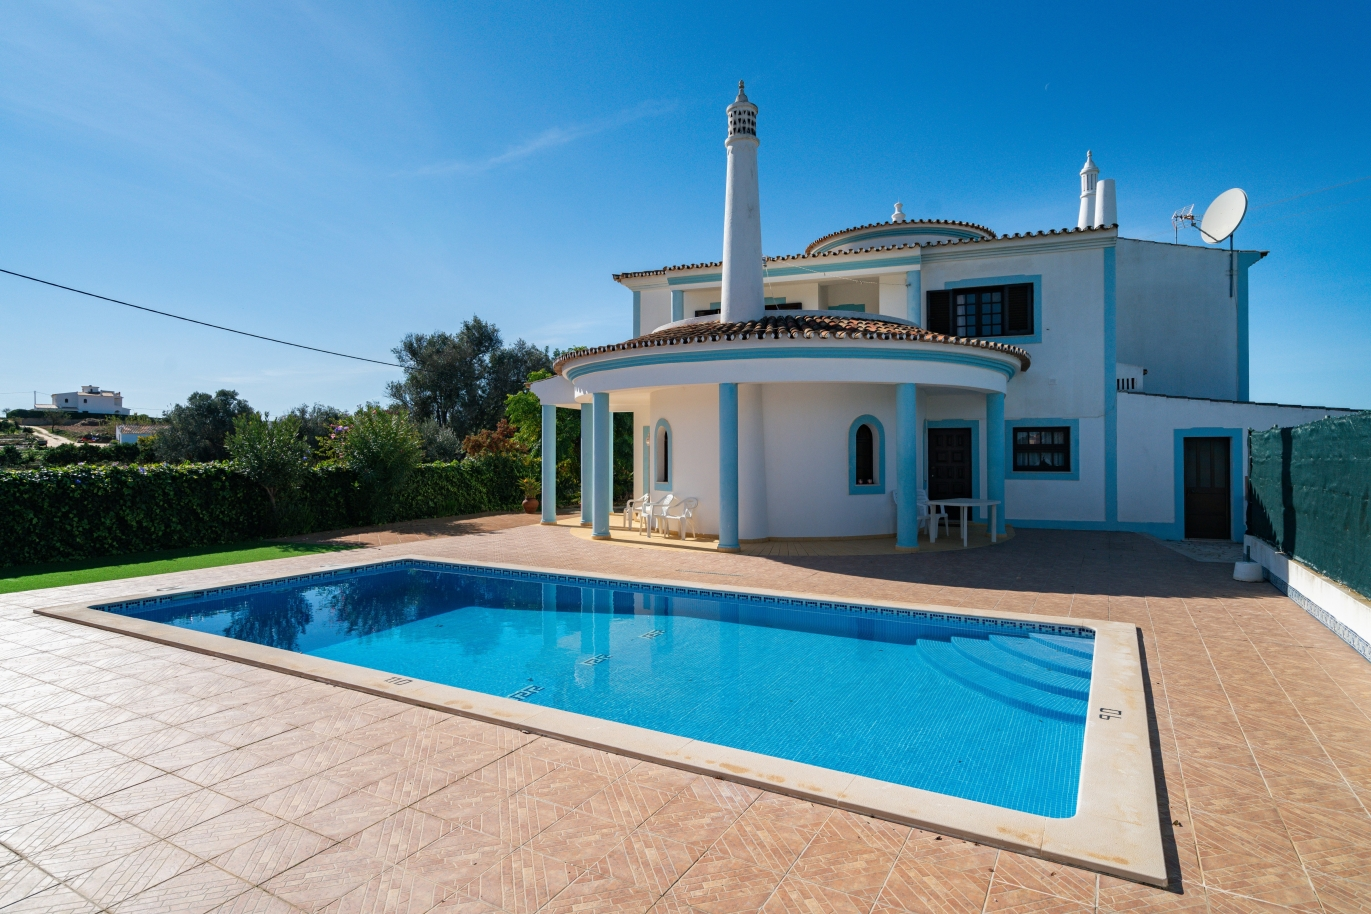 villa-with-swimming-pool-and-near-the-sea-albufeira-algarve